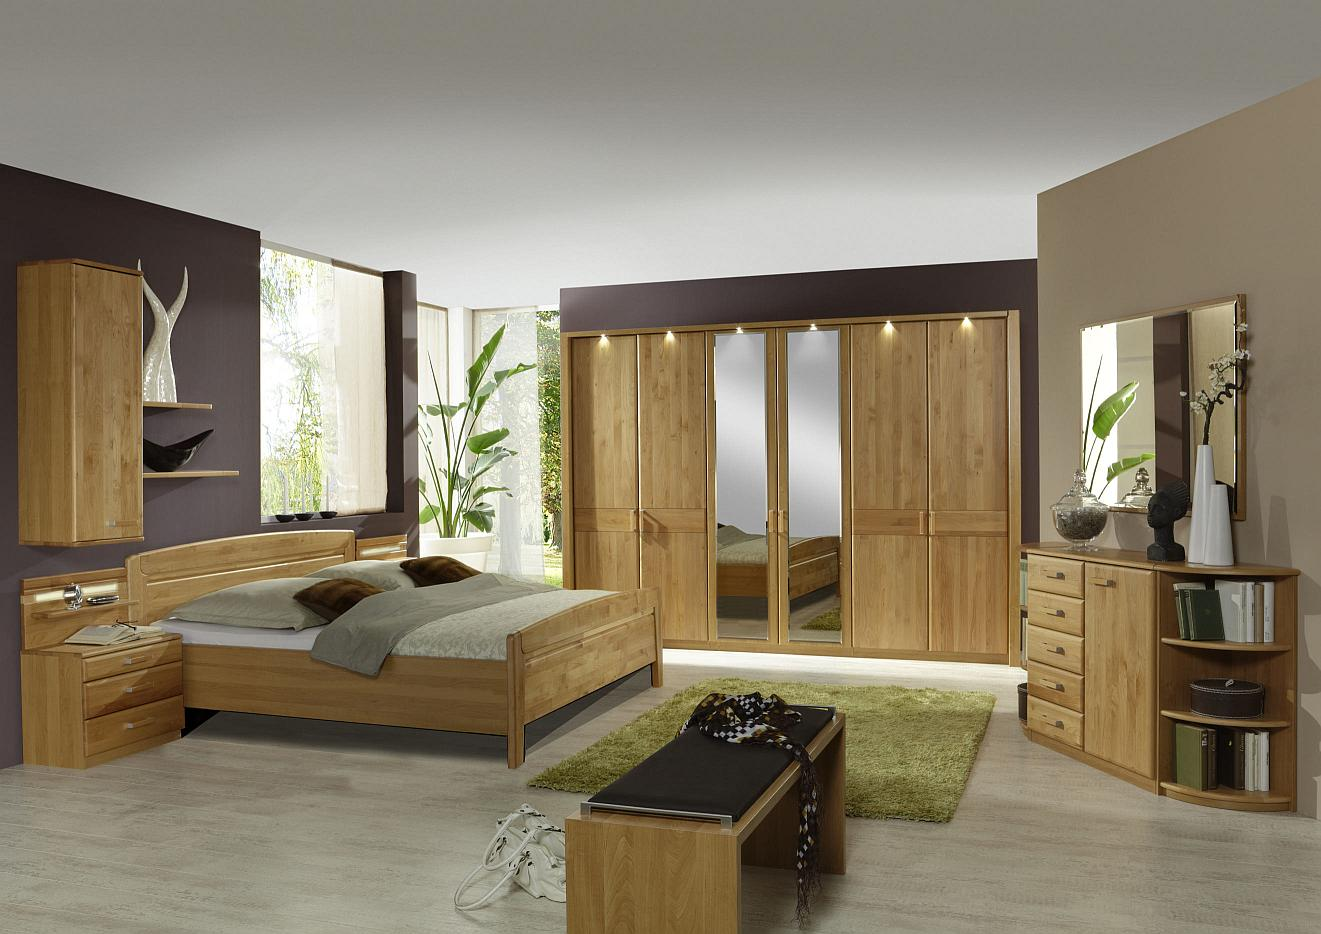 wiemann luxor lausanne schlafzimmer g nstig. Black Bedroom Furniture Sets. Home Design Ideas